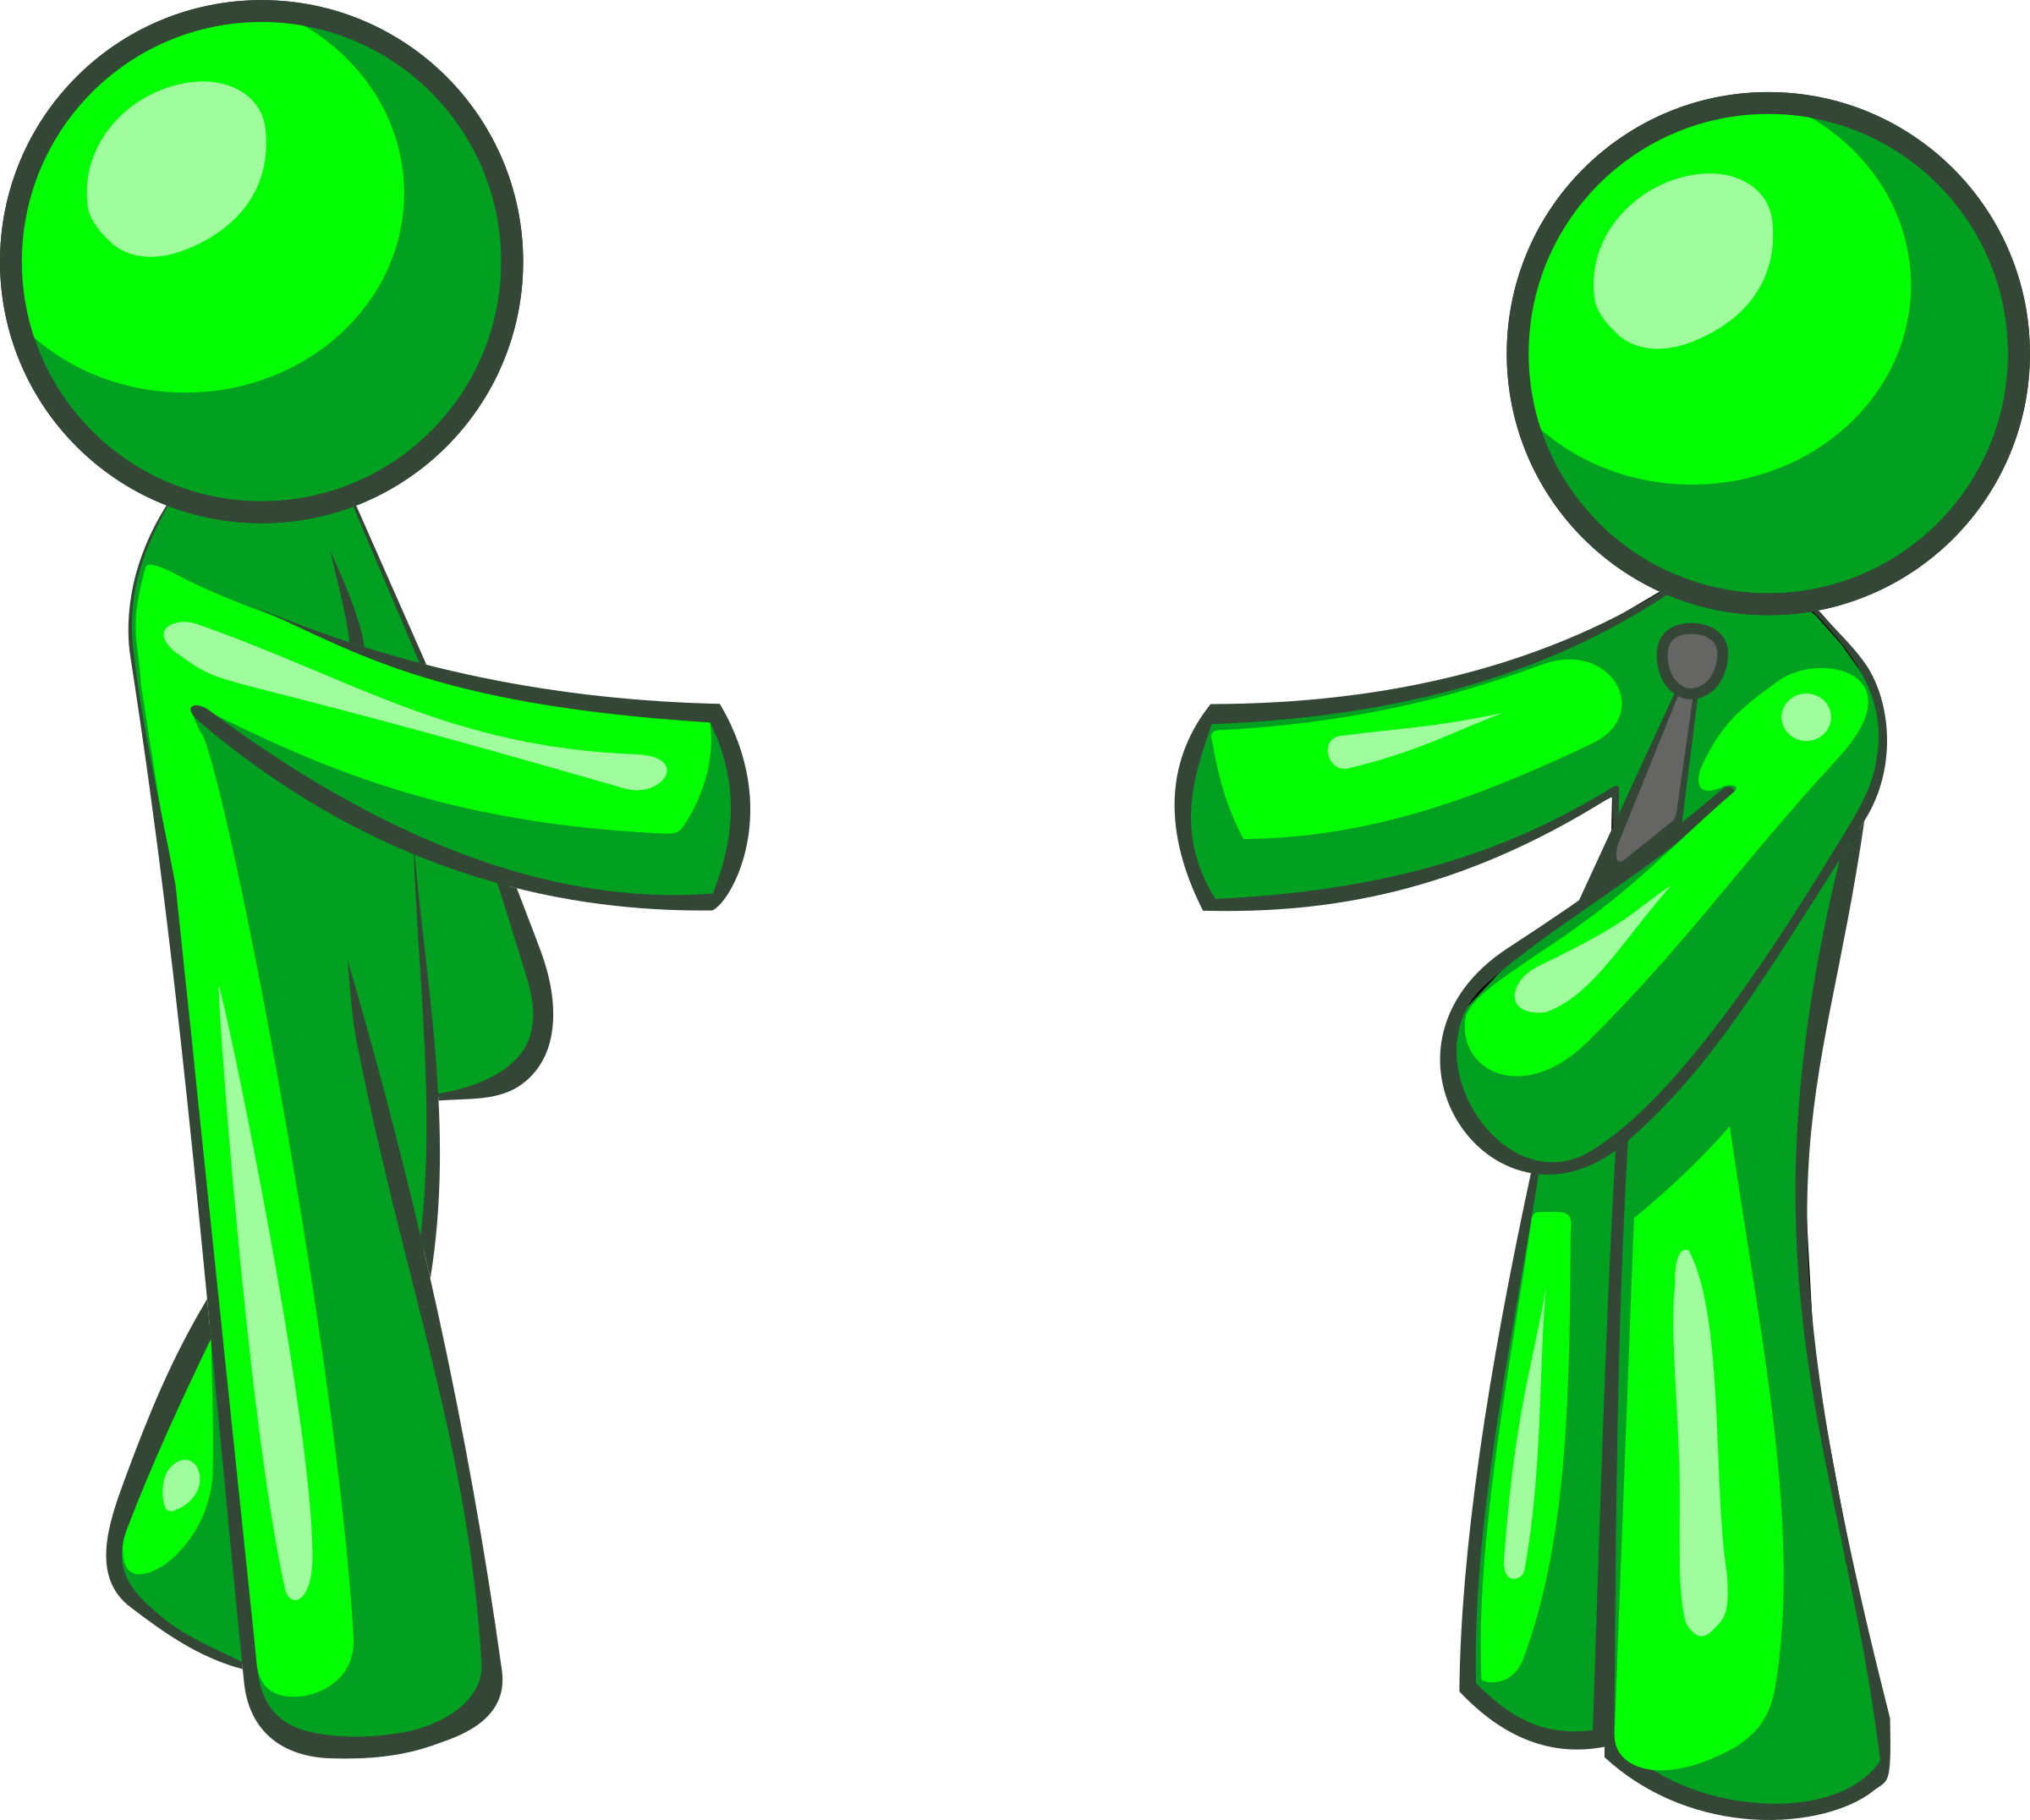 Shacking hand version icons. Men clipart green